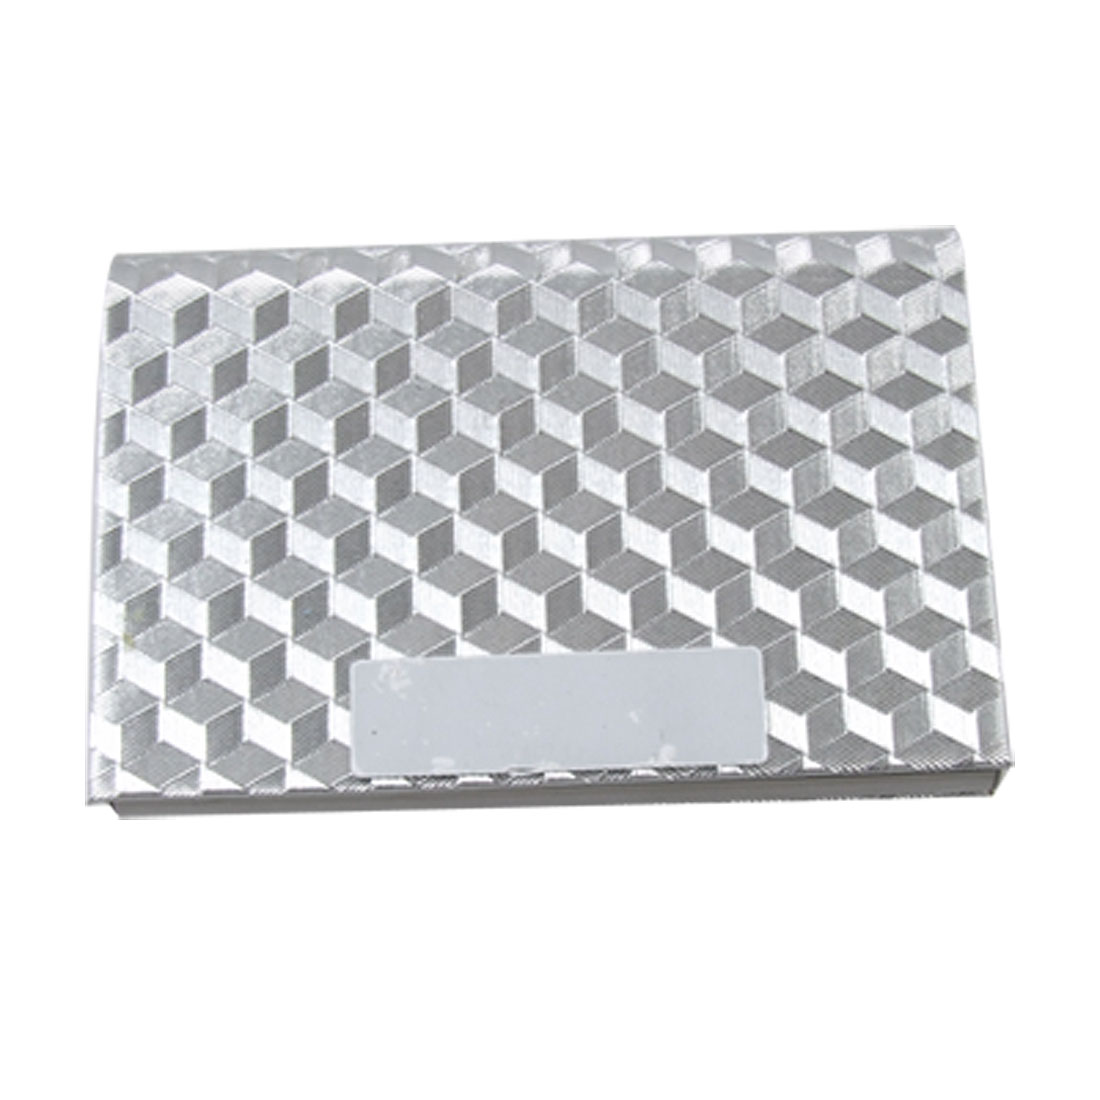 Silver Tone Rhombus Faux Leather Coated Bank Name Card Case